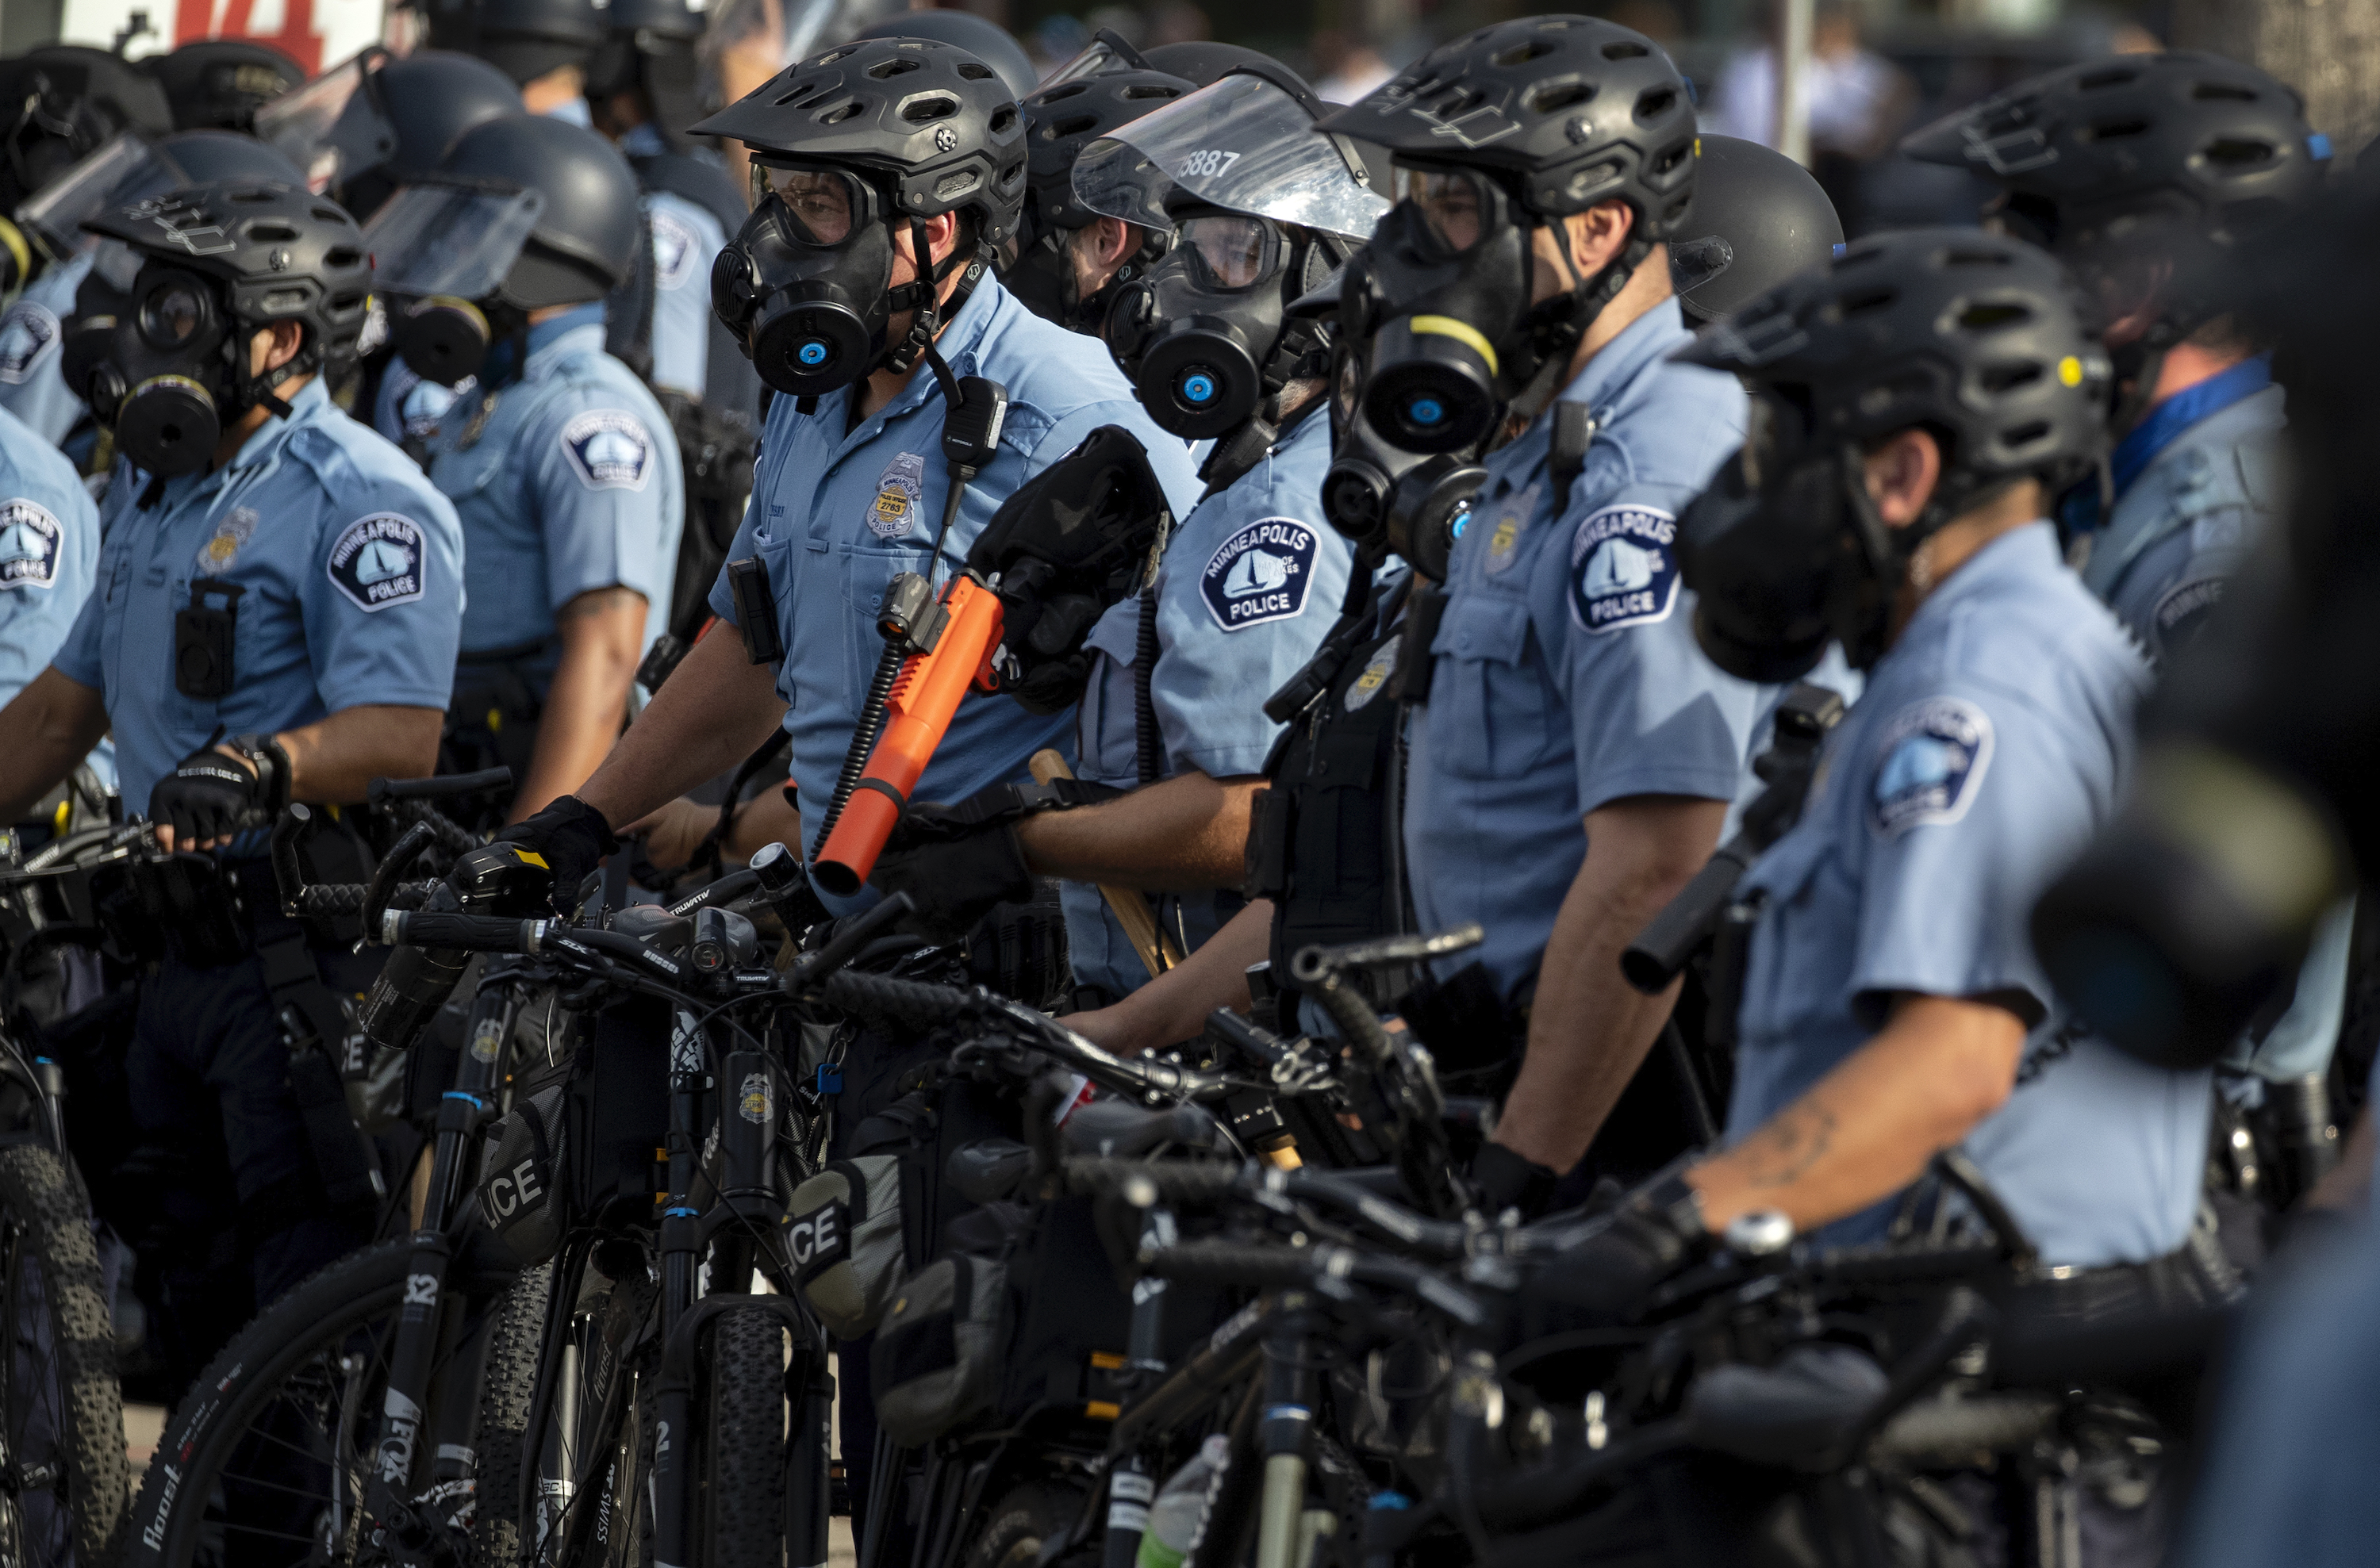 Minneapolis Police officers lined up as demonstrators protested the killing of George Floyd outside the Minneapolis Police Department's Third Precinct office in south Minneapolis on May 27, 2020.